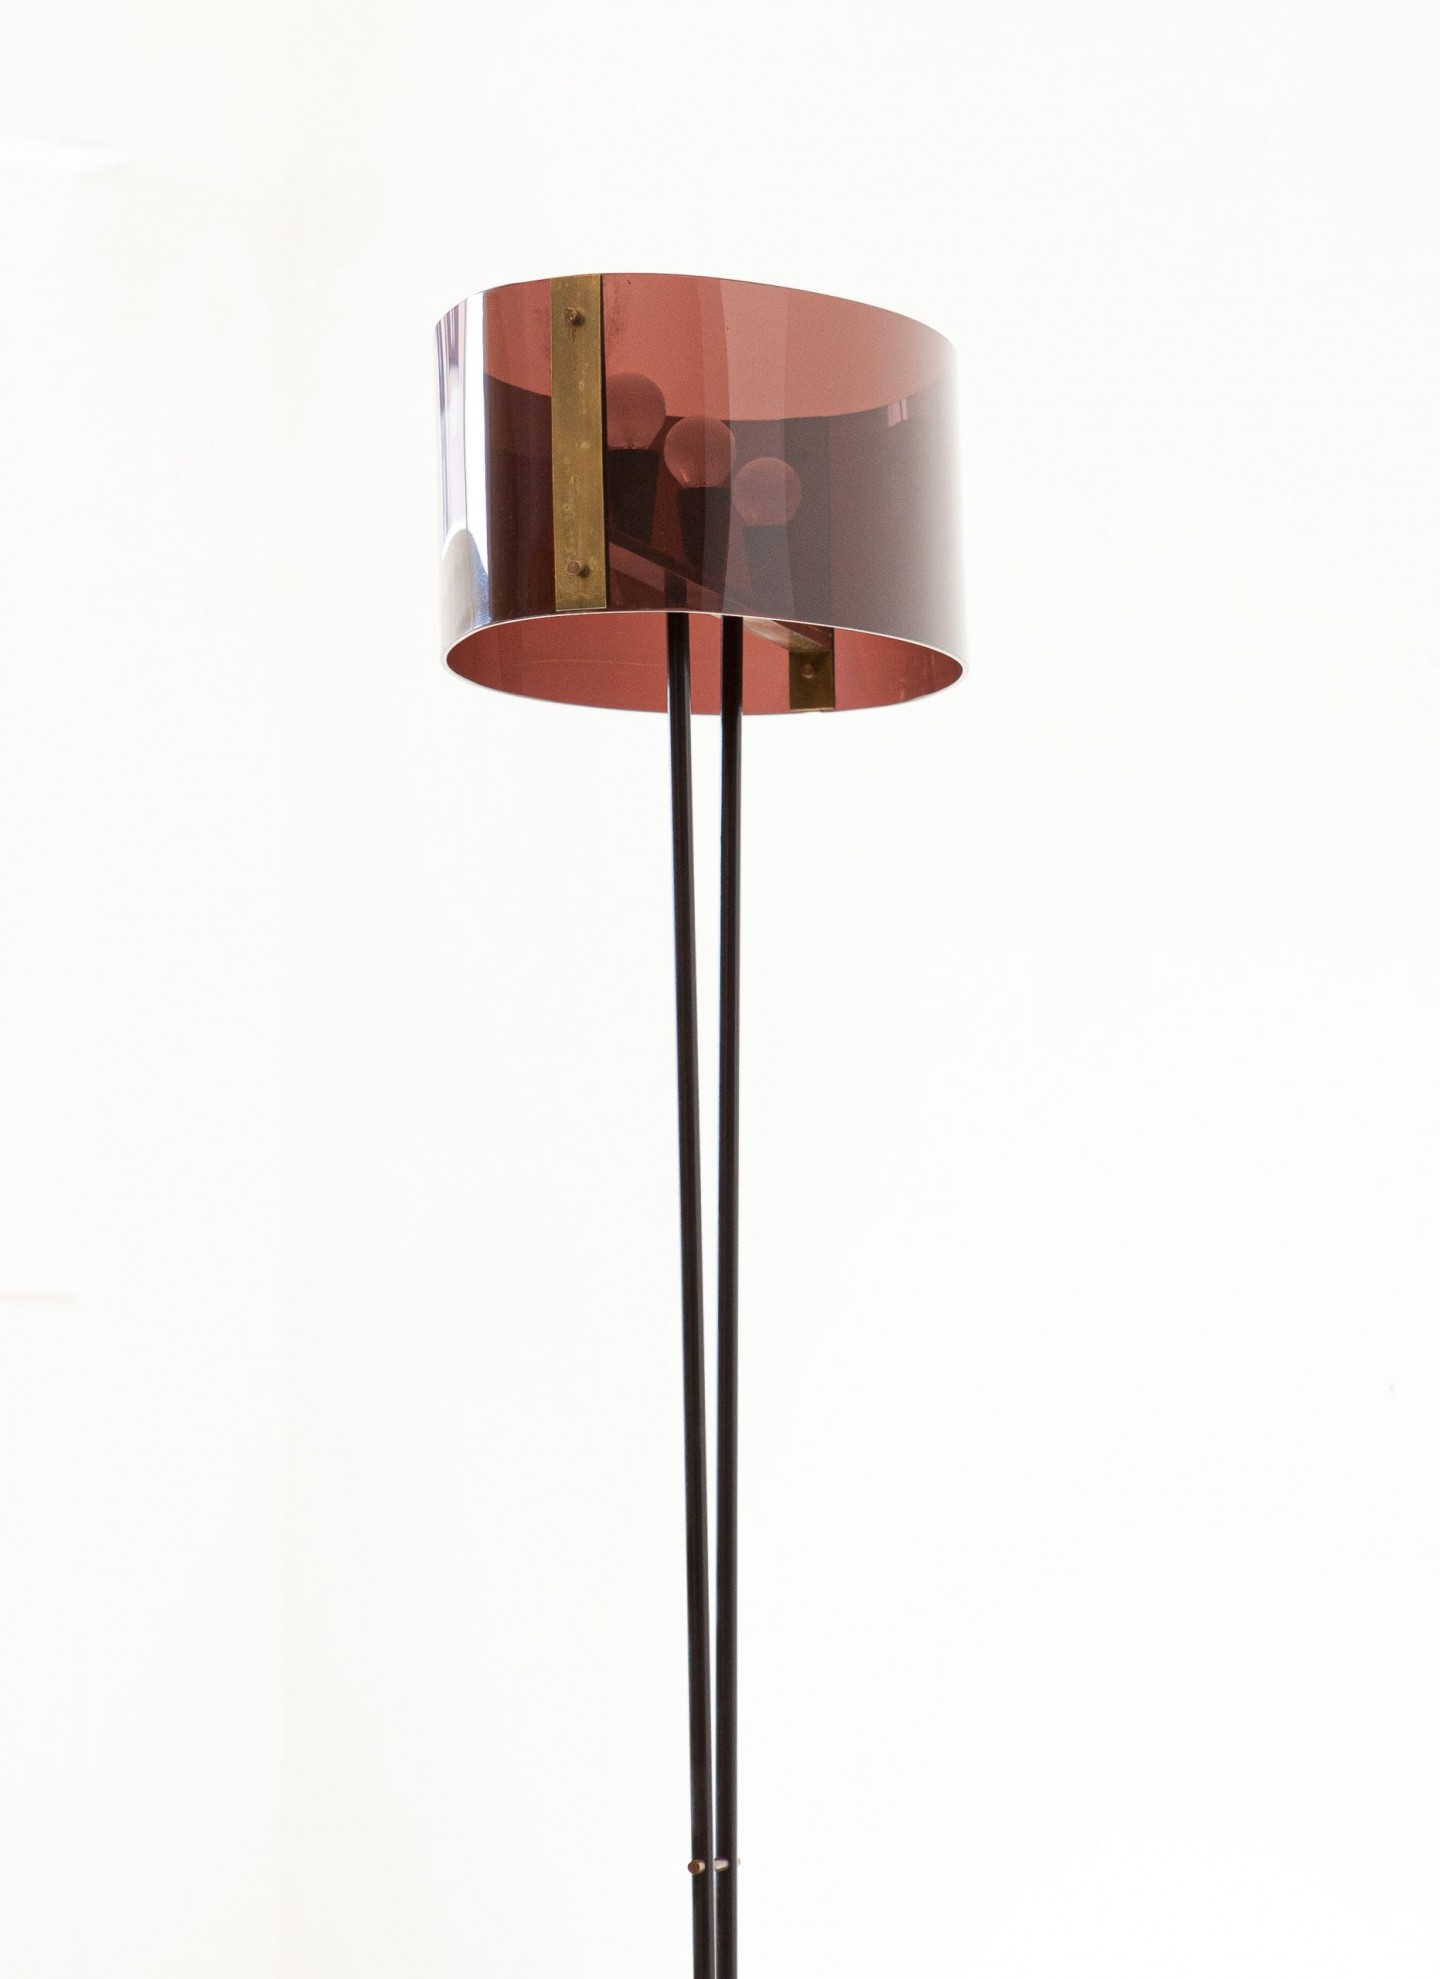 Italian floor lamp by Stilux L99 – Not Available